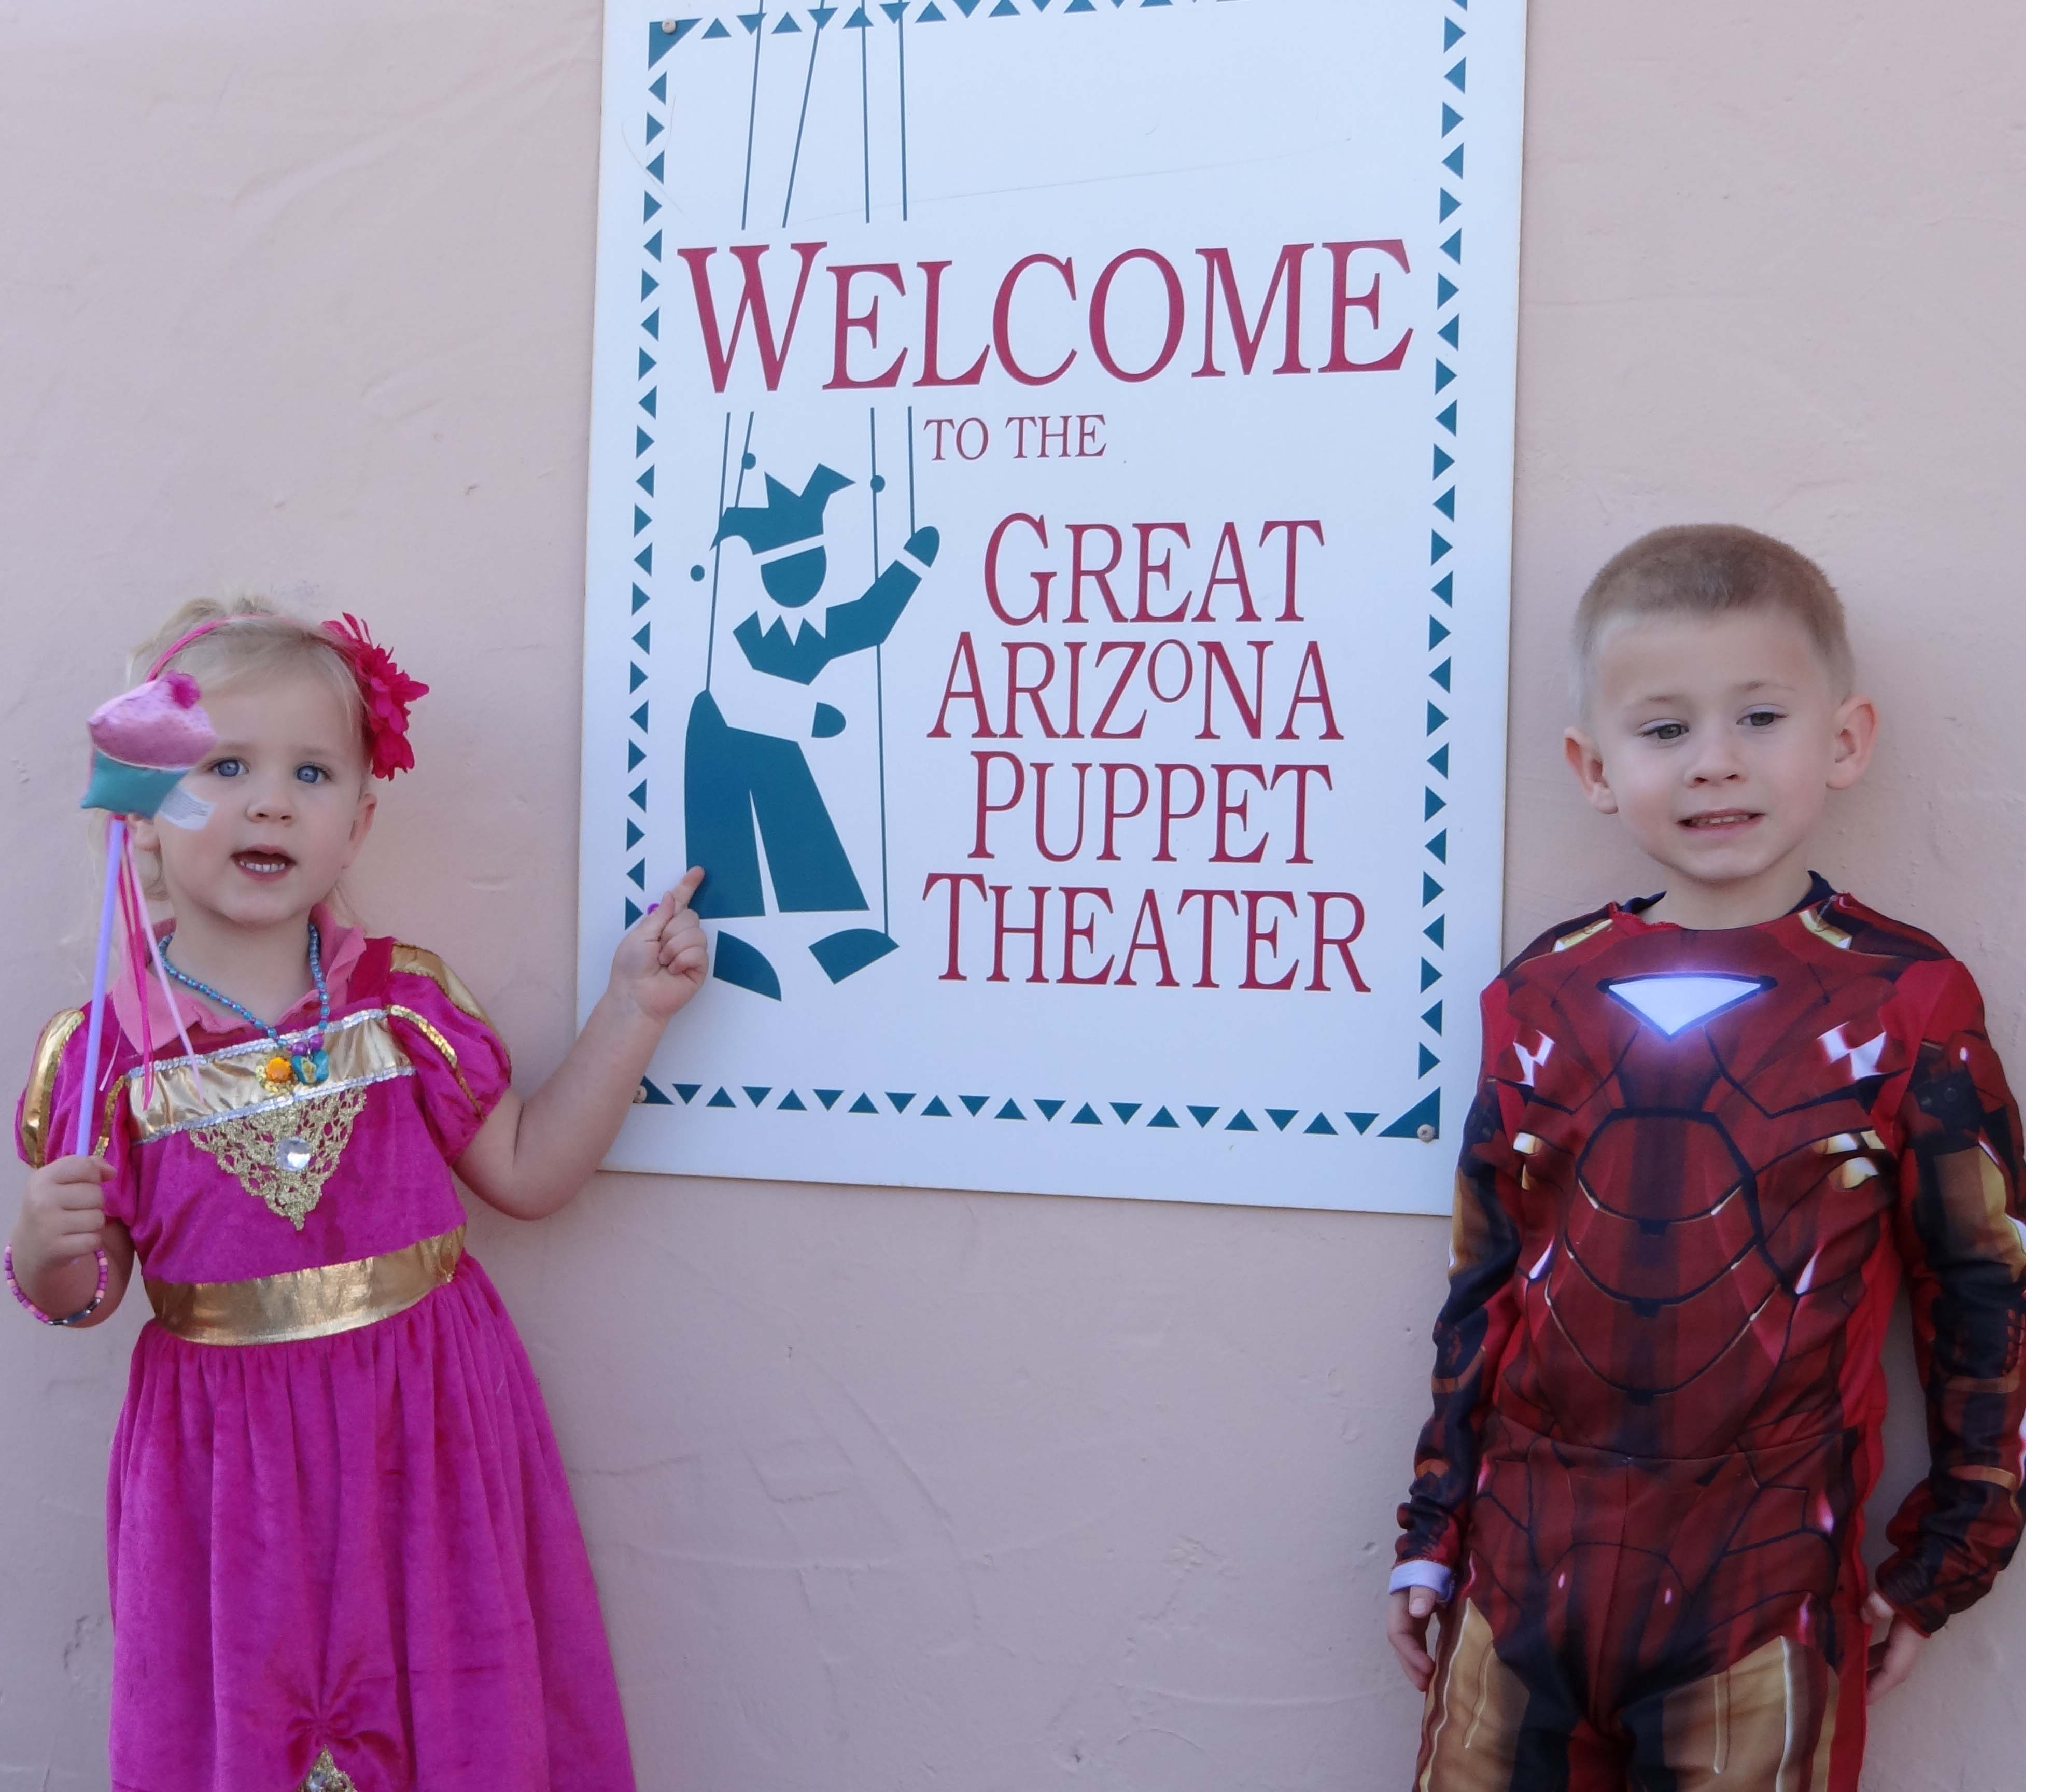 Sarah and Jeremiah Roland visit the Great Arizona Puppet Theater.